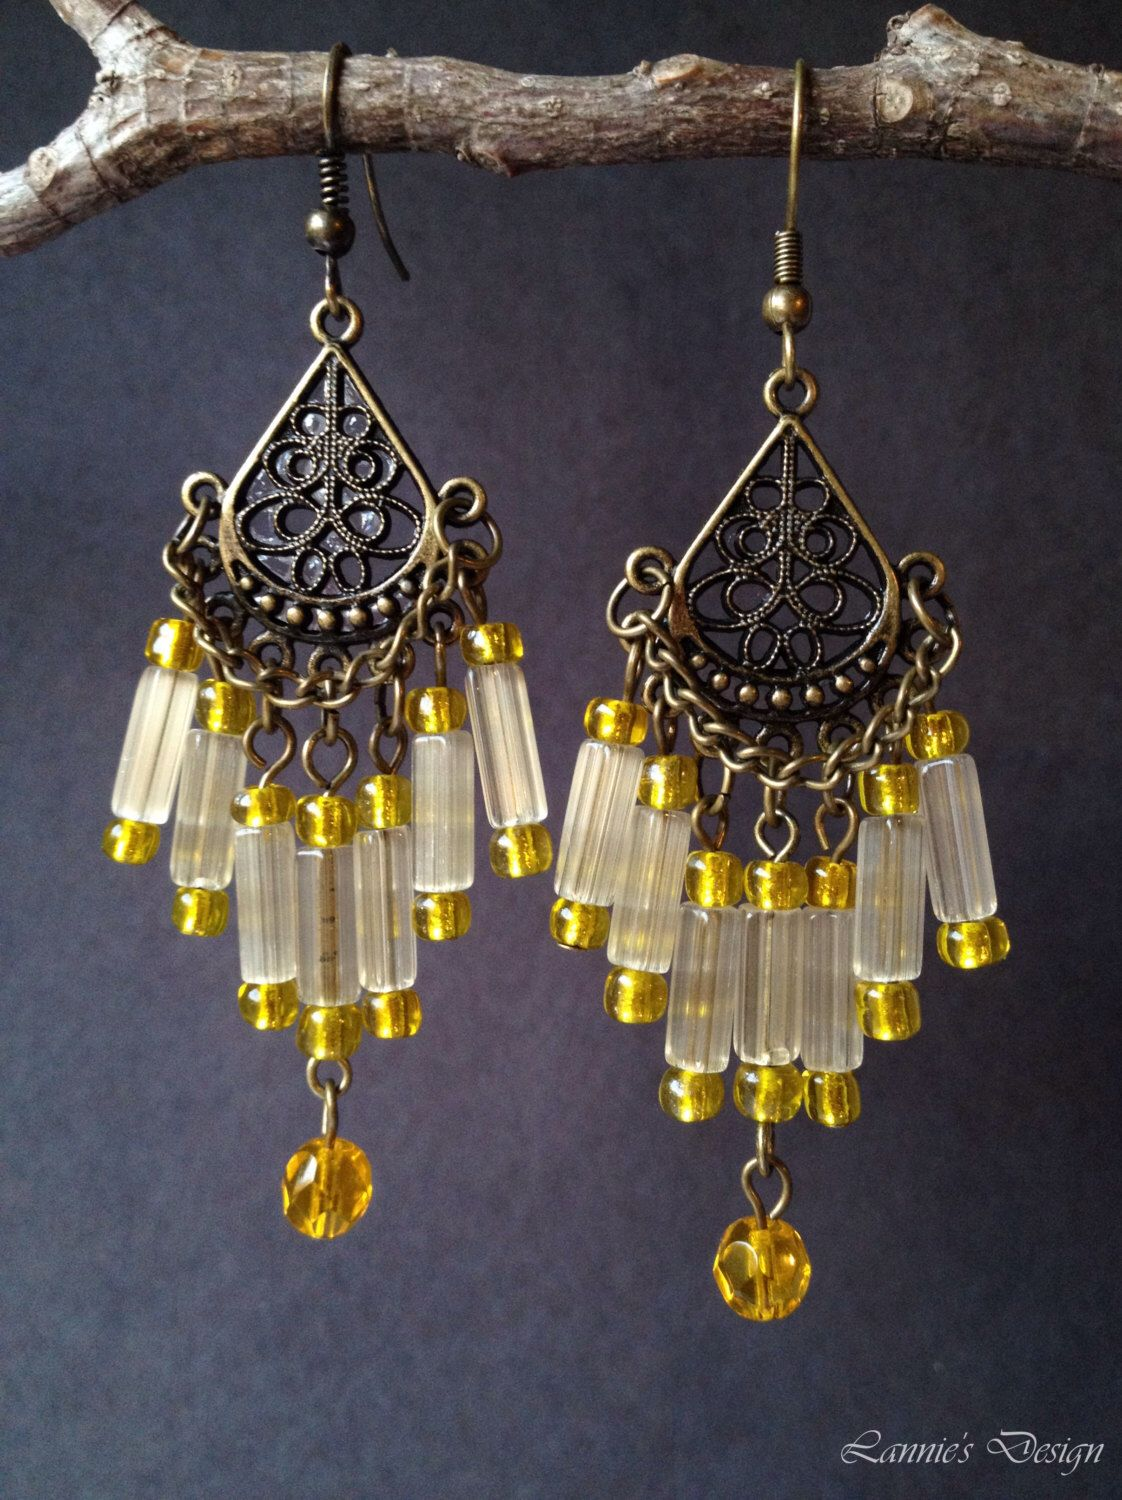 Yellow antiqued brass chandelier earrings posts hooks or lever yellow antiqued brass chandelier earrings with hooks or lever backs free shipping anywhere within usa arubaitofo Choice Image